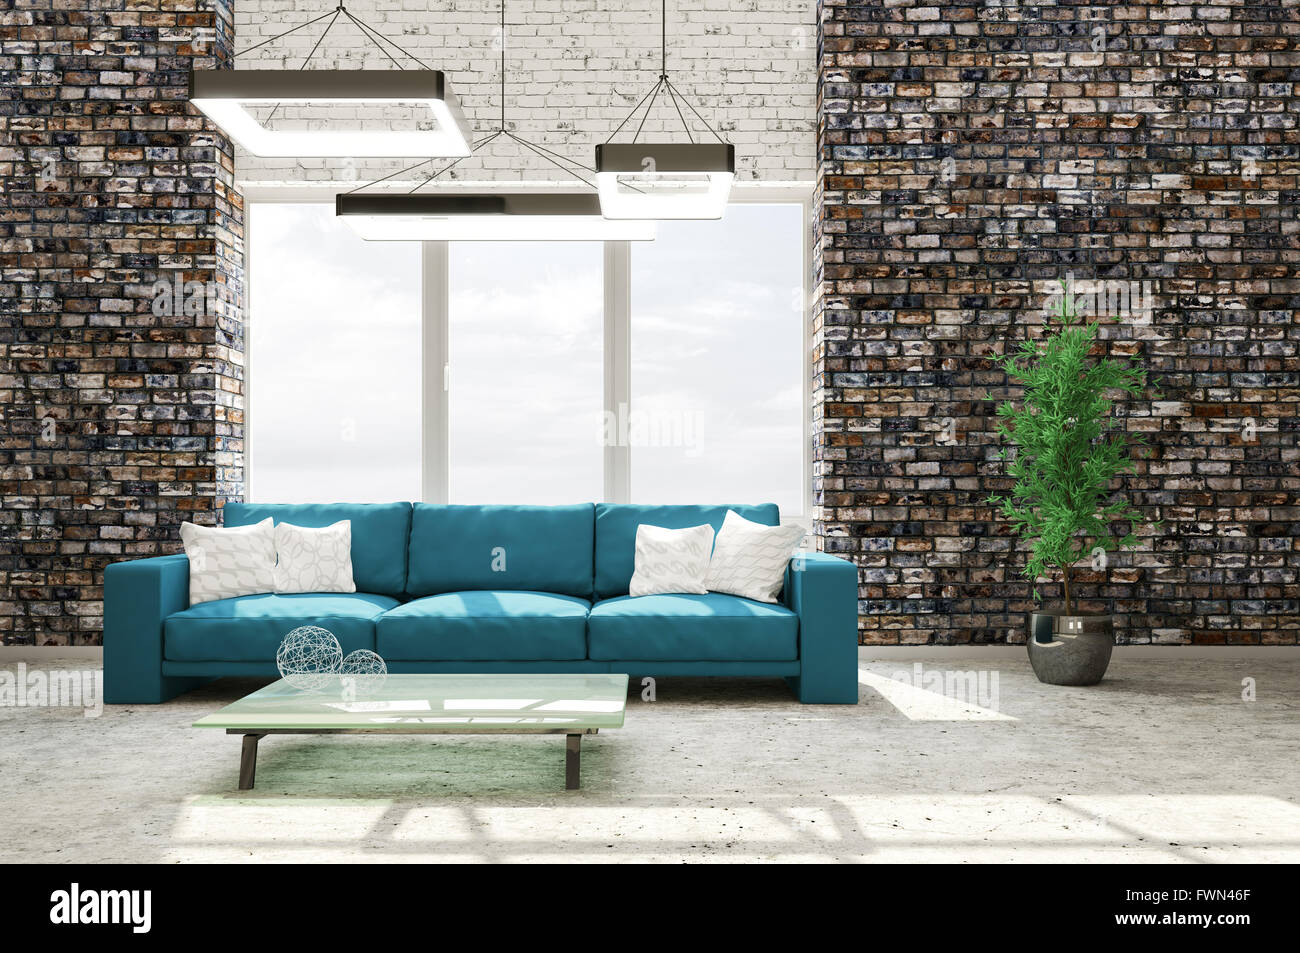 modern interior of living room with brick wall concrete floor cyan